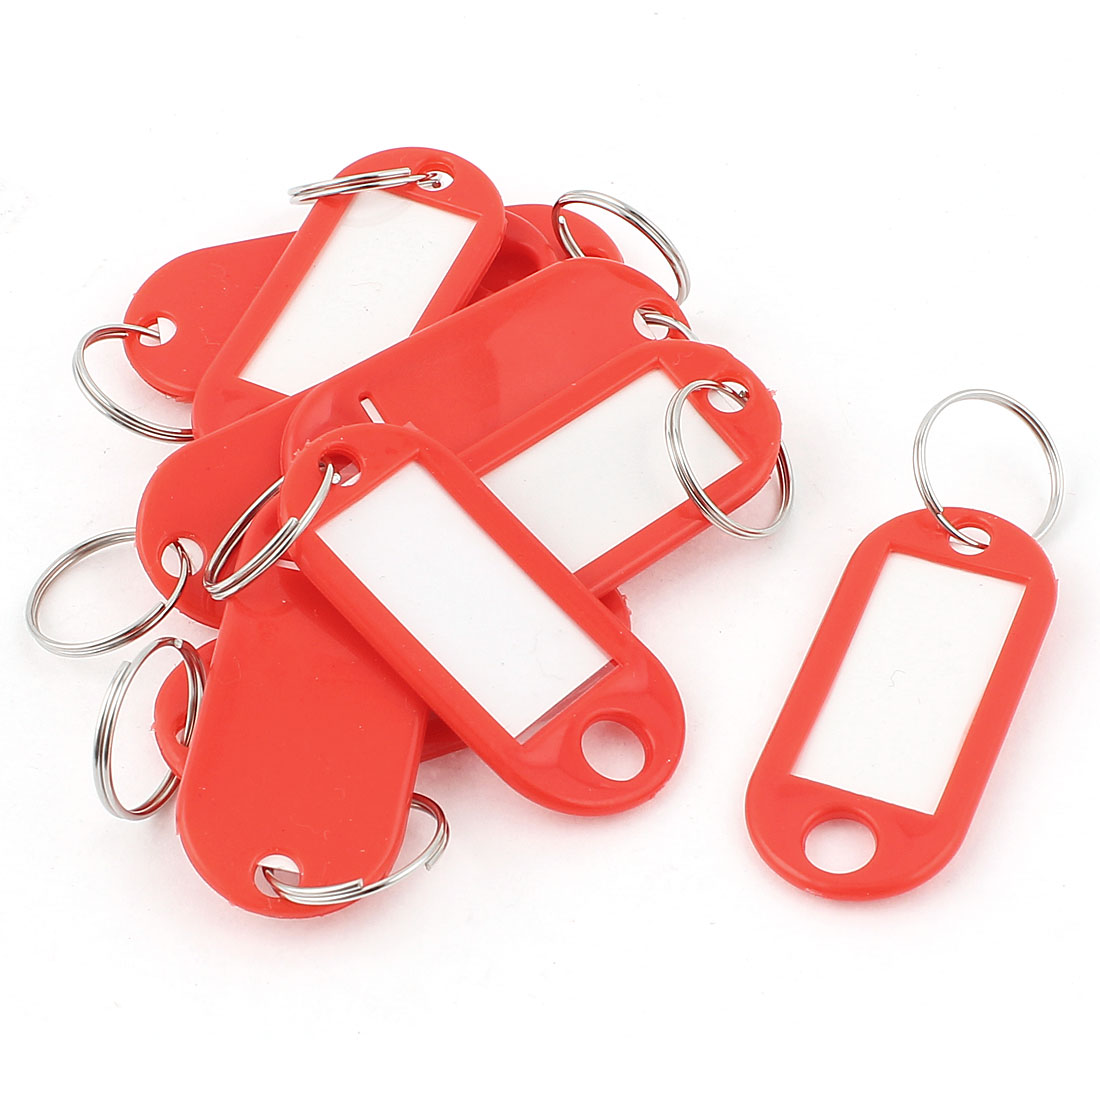 10Pcs Metal Ring Red Plastic Oval Key Fobs Luggage ID Label Name Tag Keyring Keychain